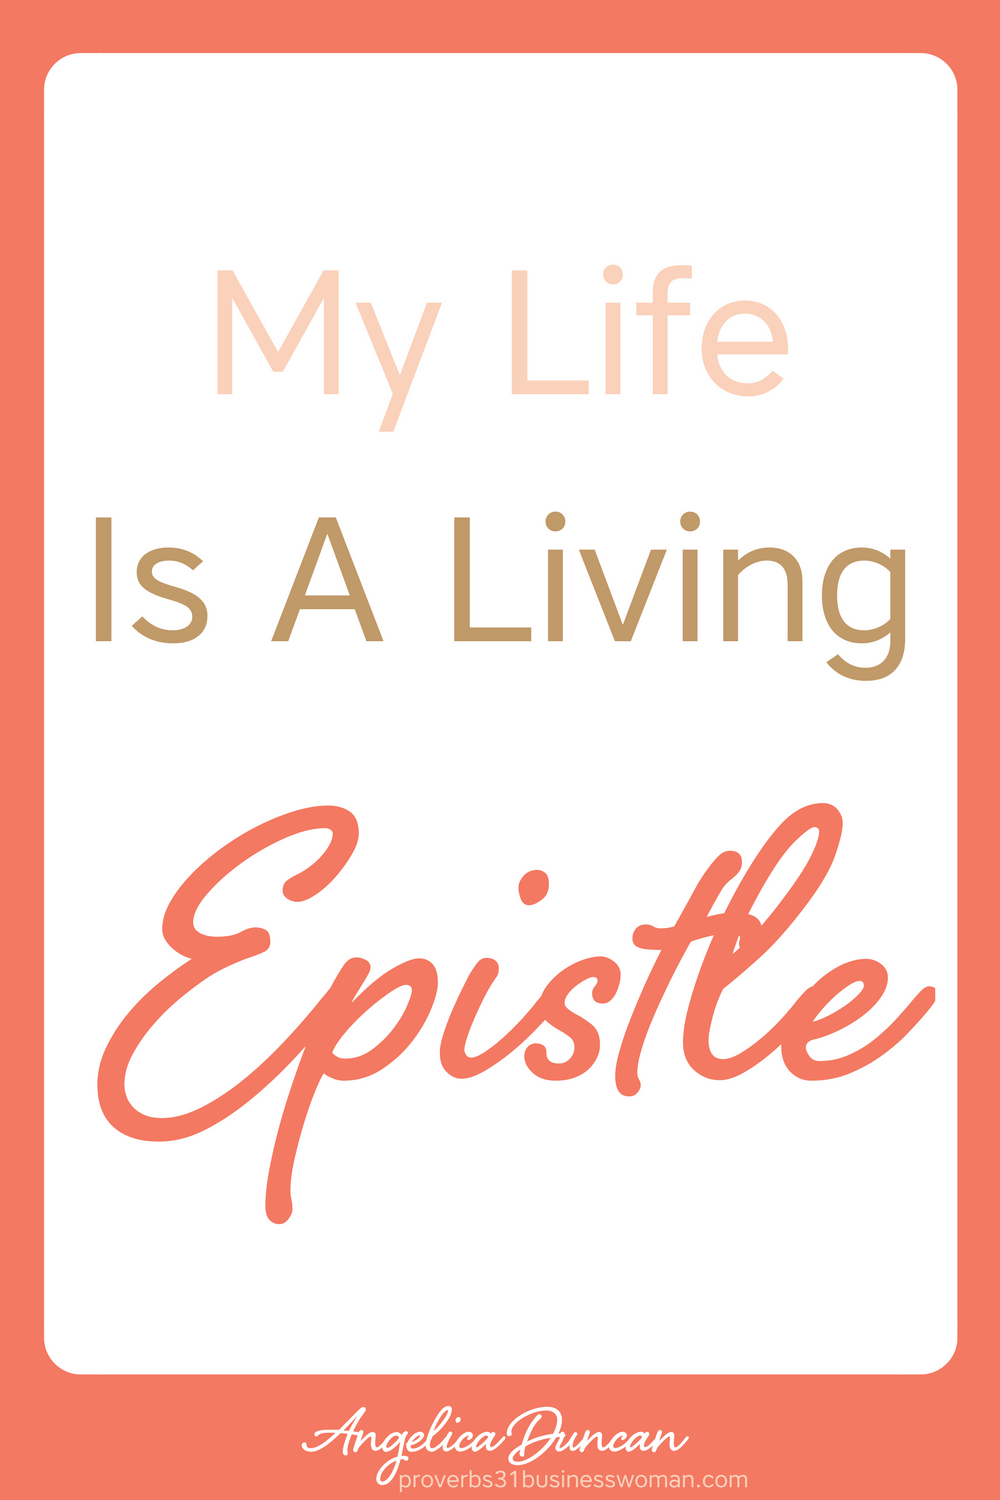 My life is a living Epistle for Christ - Daily Confessions and Affirmations For Christians #christianaffirmations #christianconfessions #christiandeclarations #biblicalaffirmations #biblicalconfessions #biblicaldeclarations #propheticaffirmations #propheticdeclarations #propheticconfessions #christianquotes #inspirationalquotes#motivationalquotes #affirmations #confessions #speaklife #encouragement #inspiration #hope #faith #bible #scripture #angelicaduncan #silkoversteel #sos